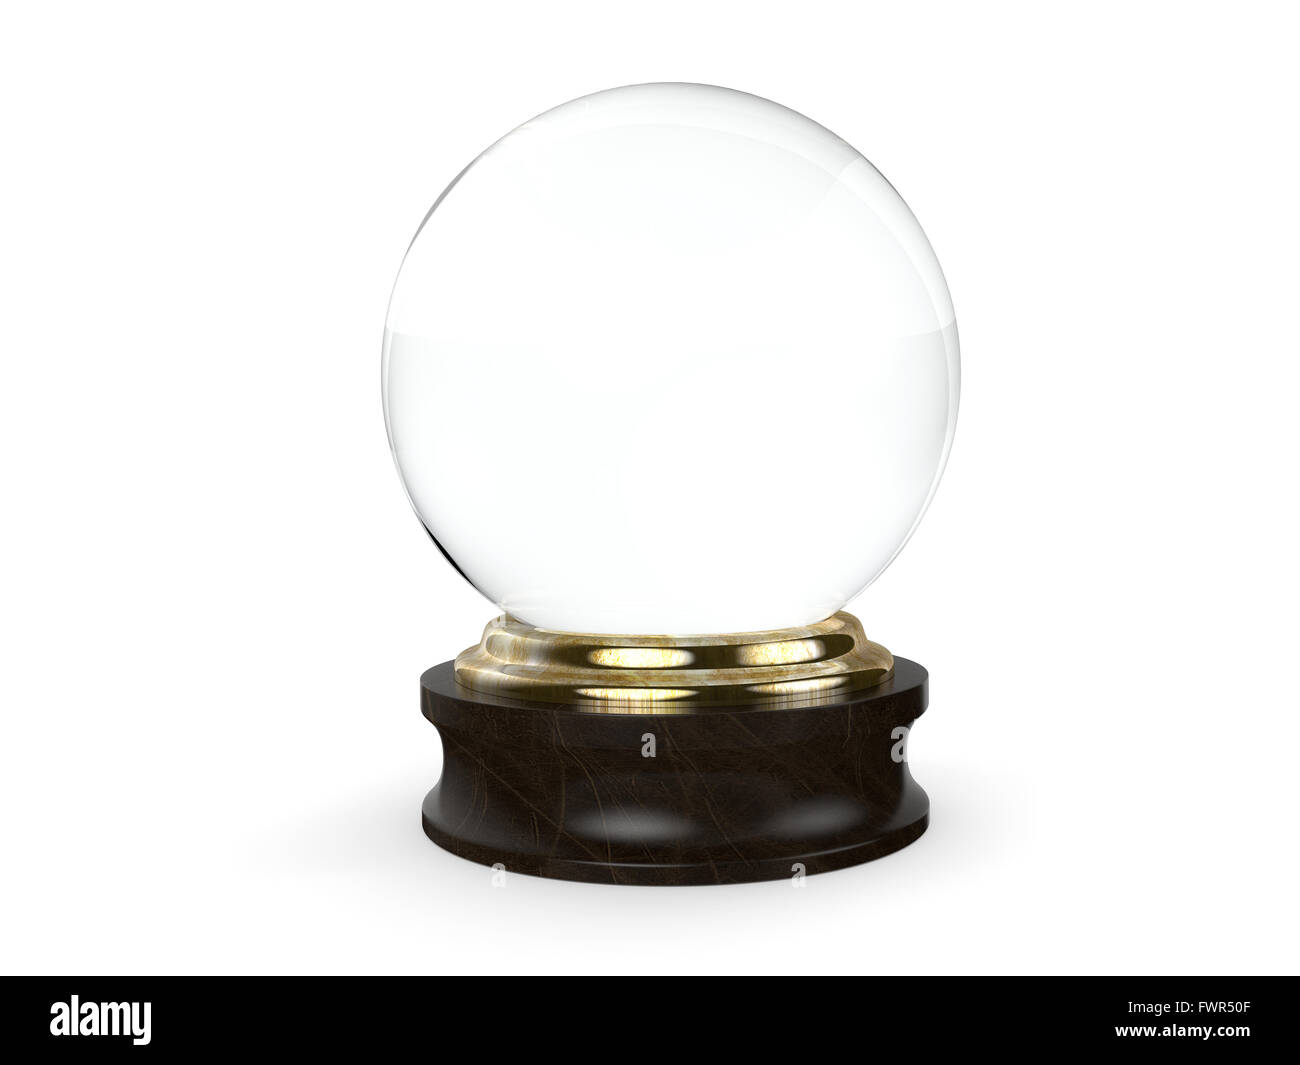 Clear Crystal ball with a wooden base isolated on a white background. - Stock Image